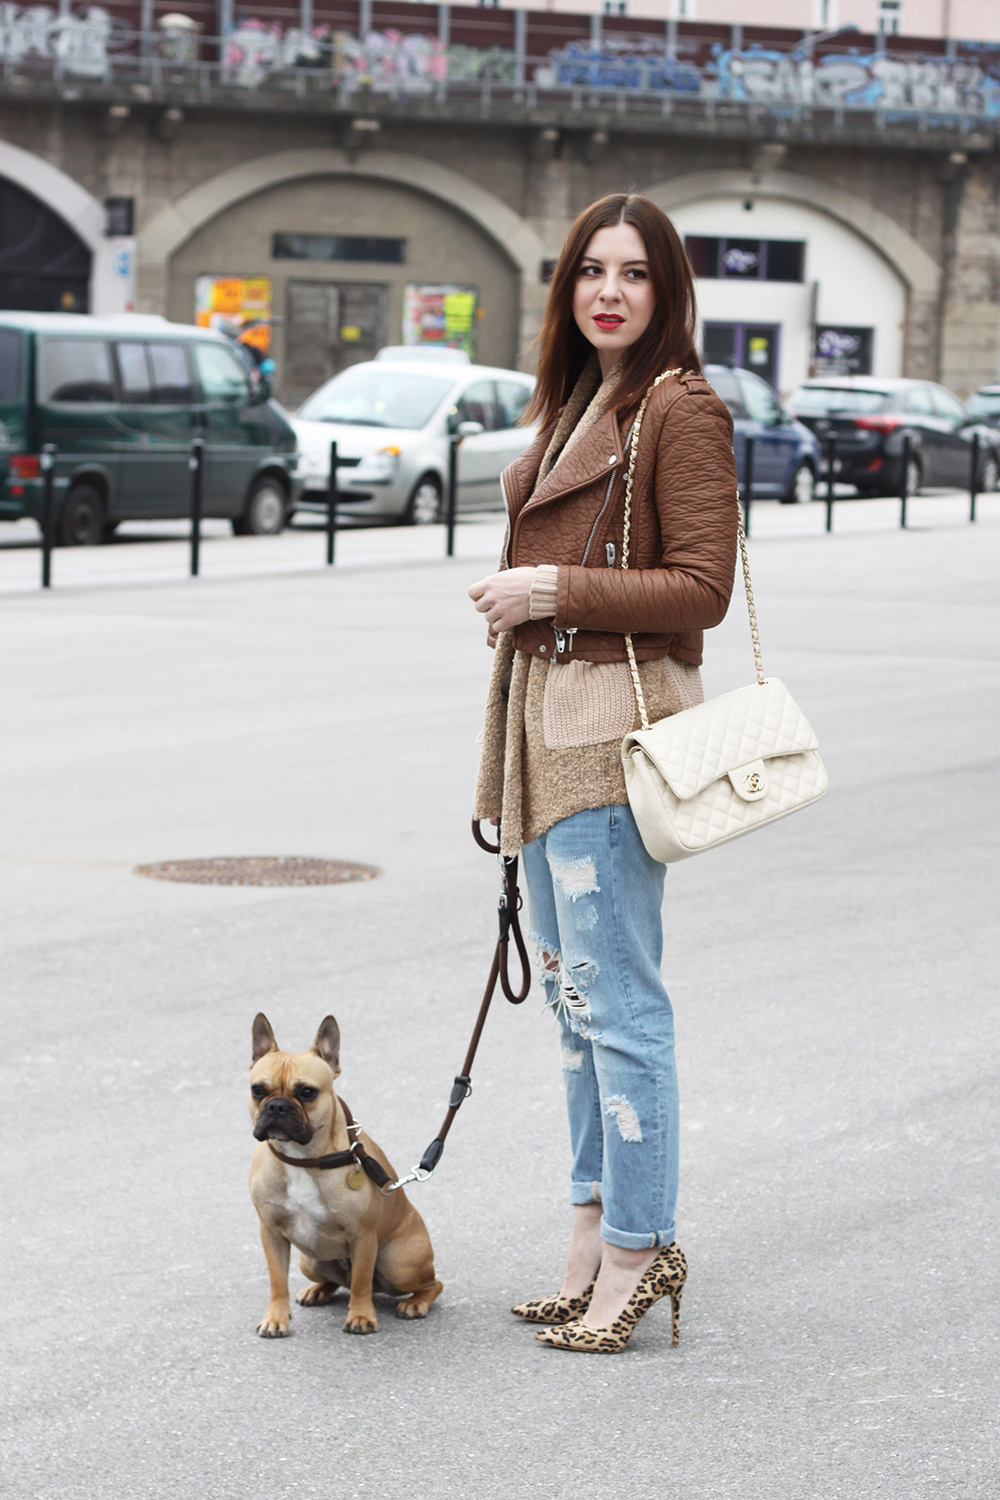 who is mocca, fashionblog, tirol, tirolerin, mode, chanel jumbo classic 2.55 double flap bag beige, lederjacke, hm, oasap, zara, boyfriend jeans, new look pumps, frenchie, french bulldog, cardigan, whoismocca.com